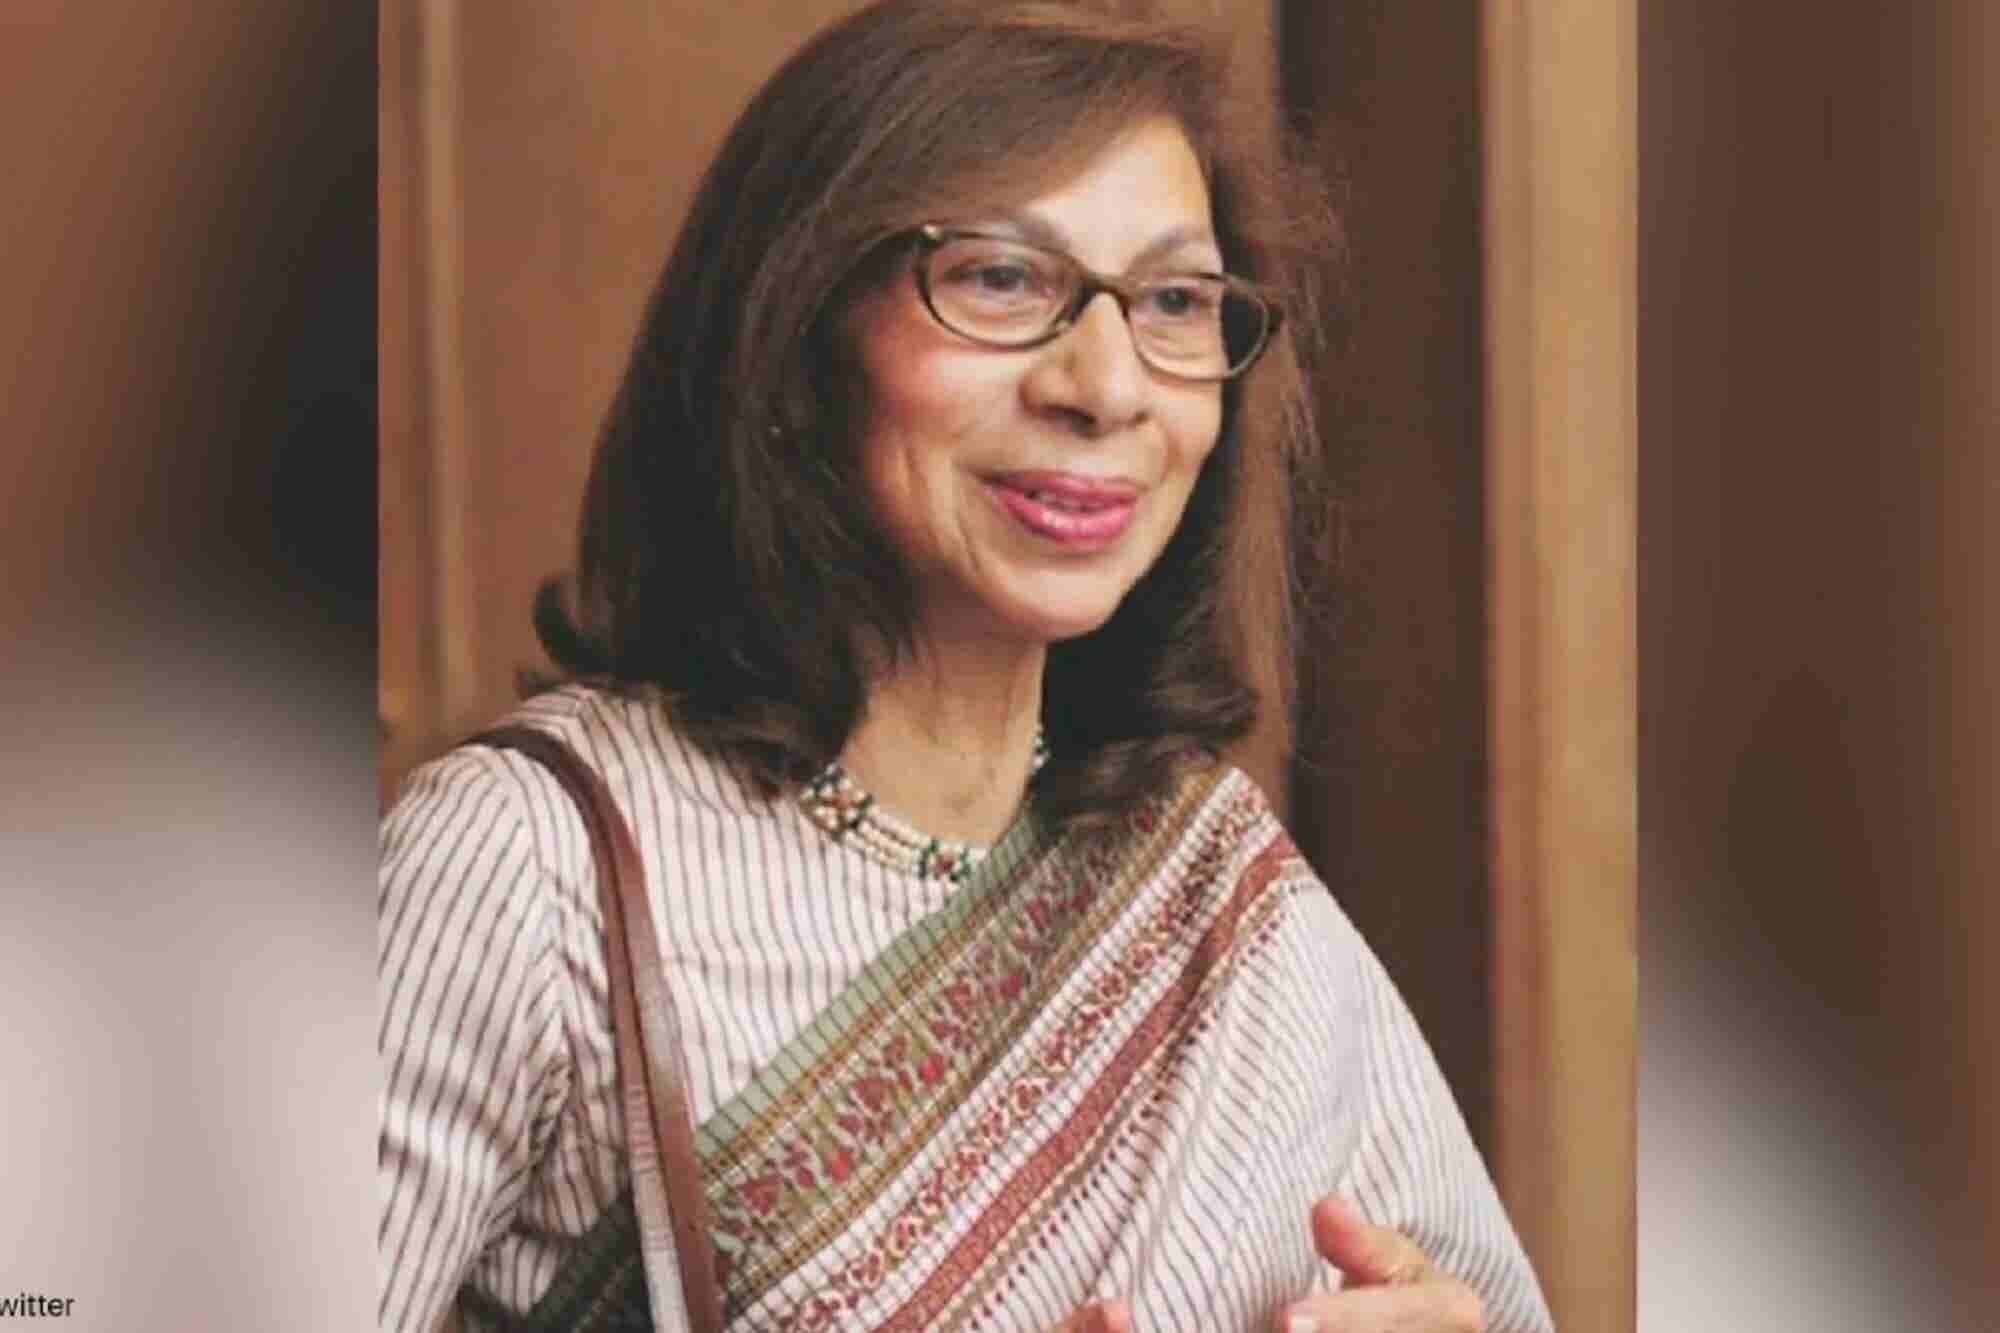 Hot Funds From Star for Hotstar & Know Who's India's Richest Woman: 4 Things to Know Today